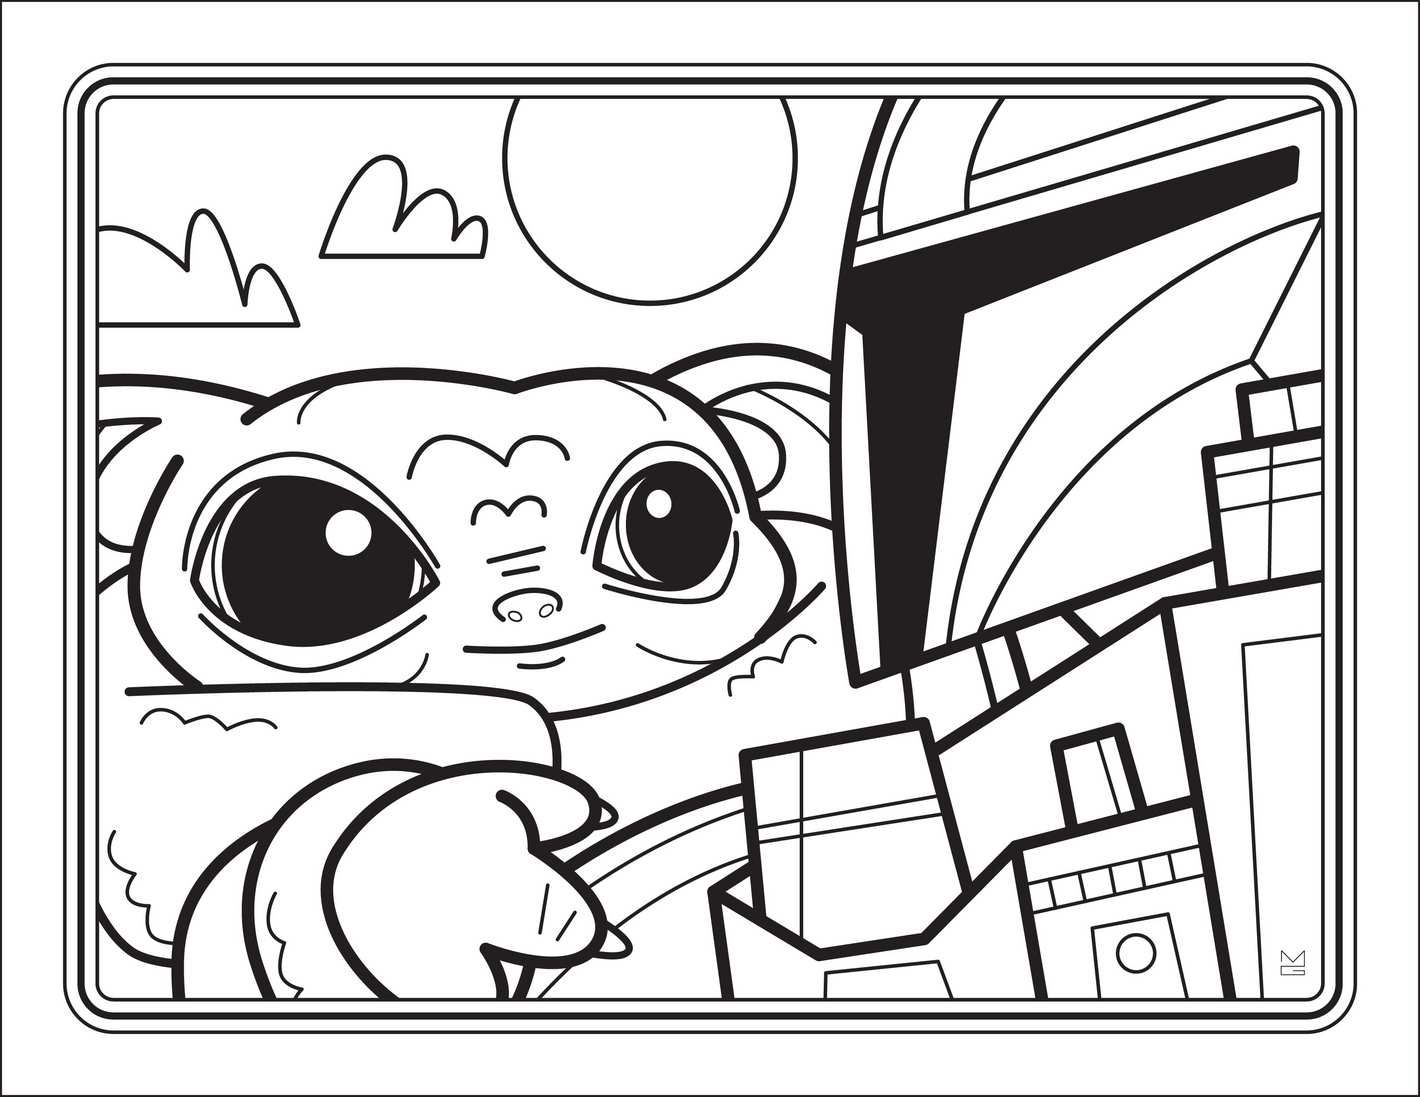 You Can Get A Free Downloadable Baby Yoda Coloring Book